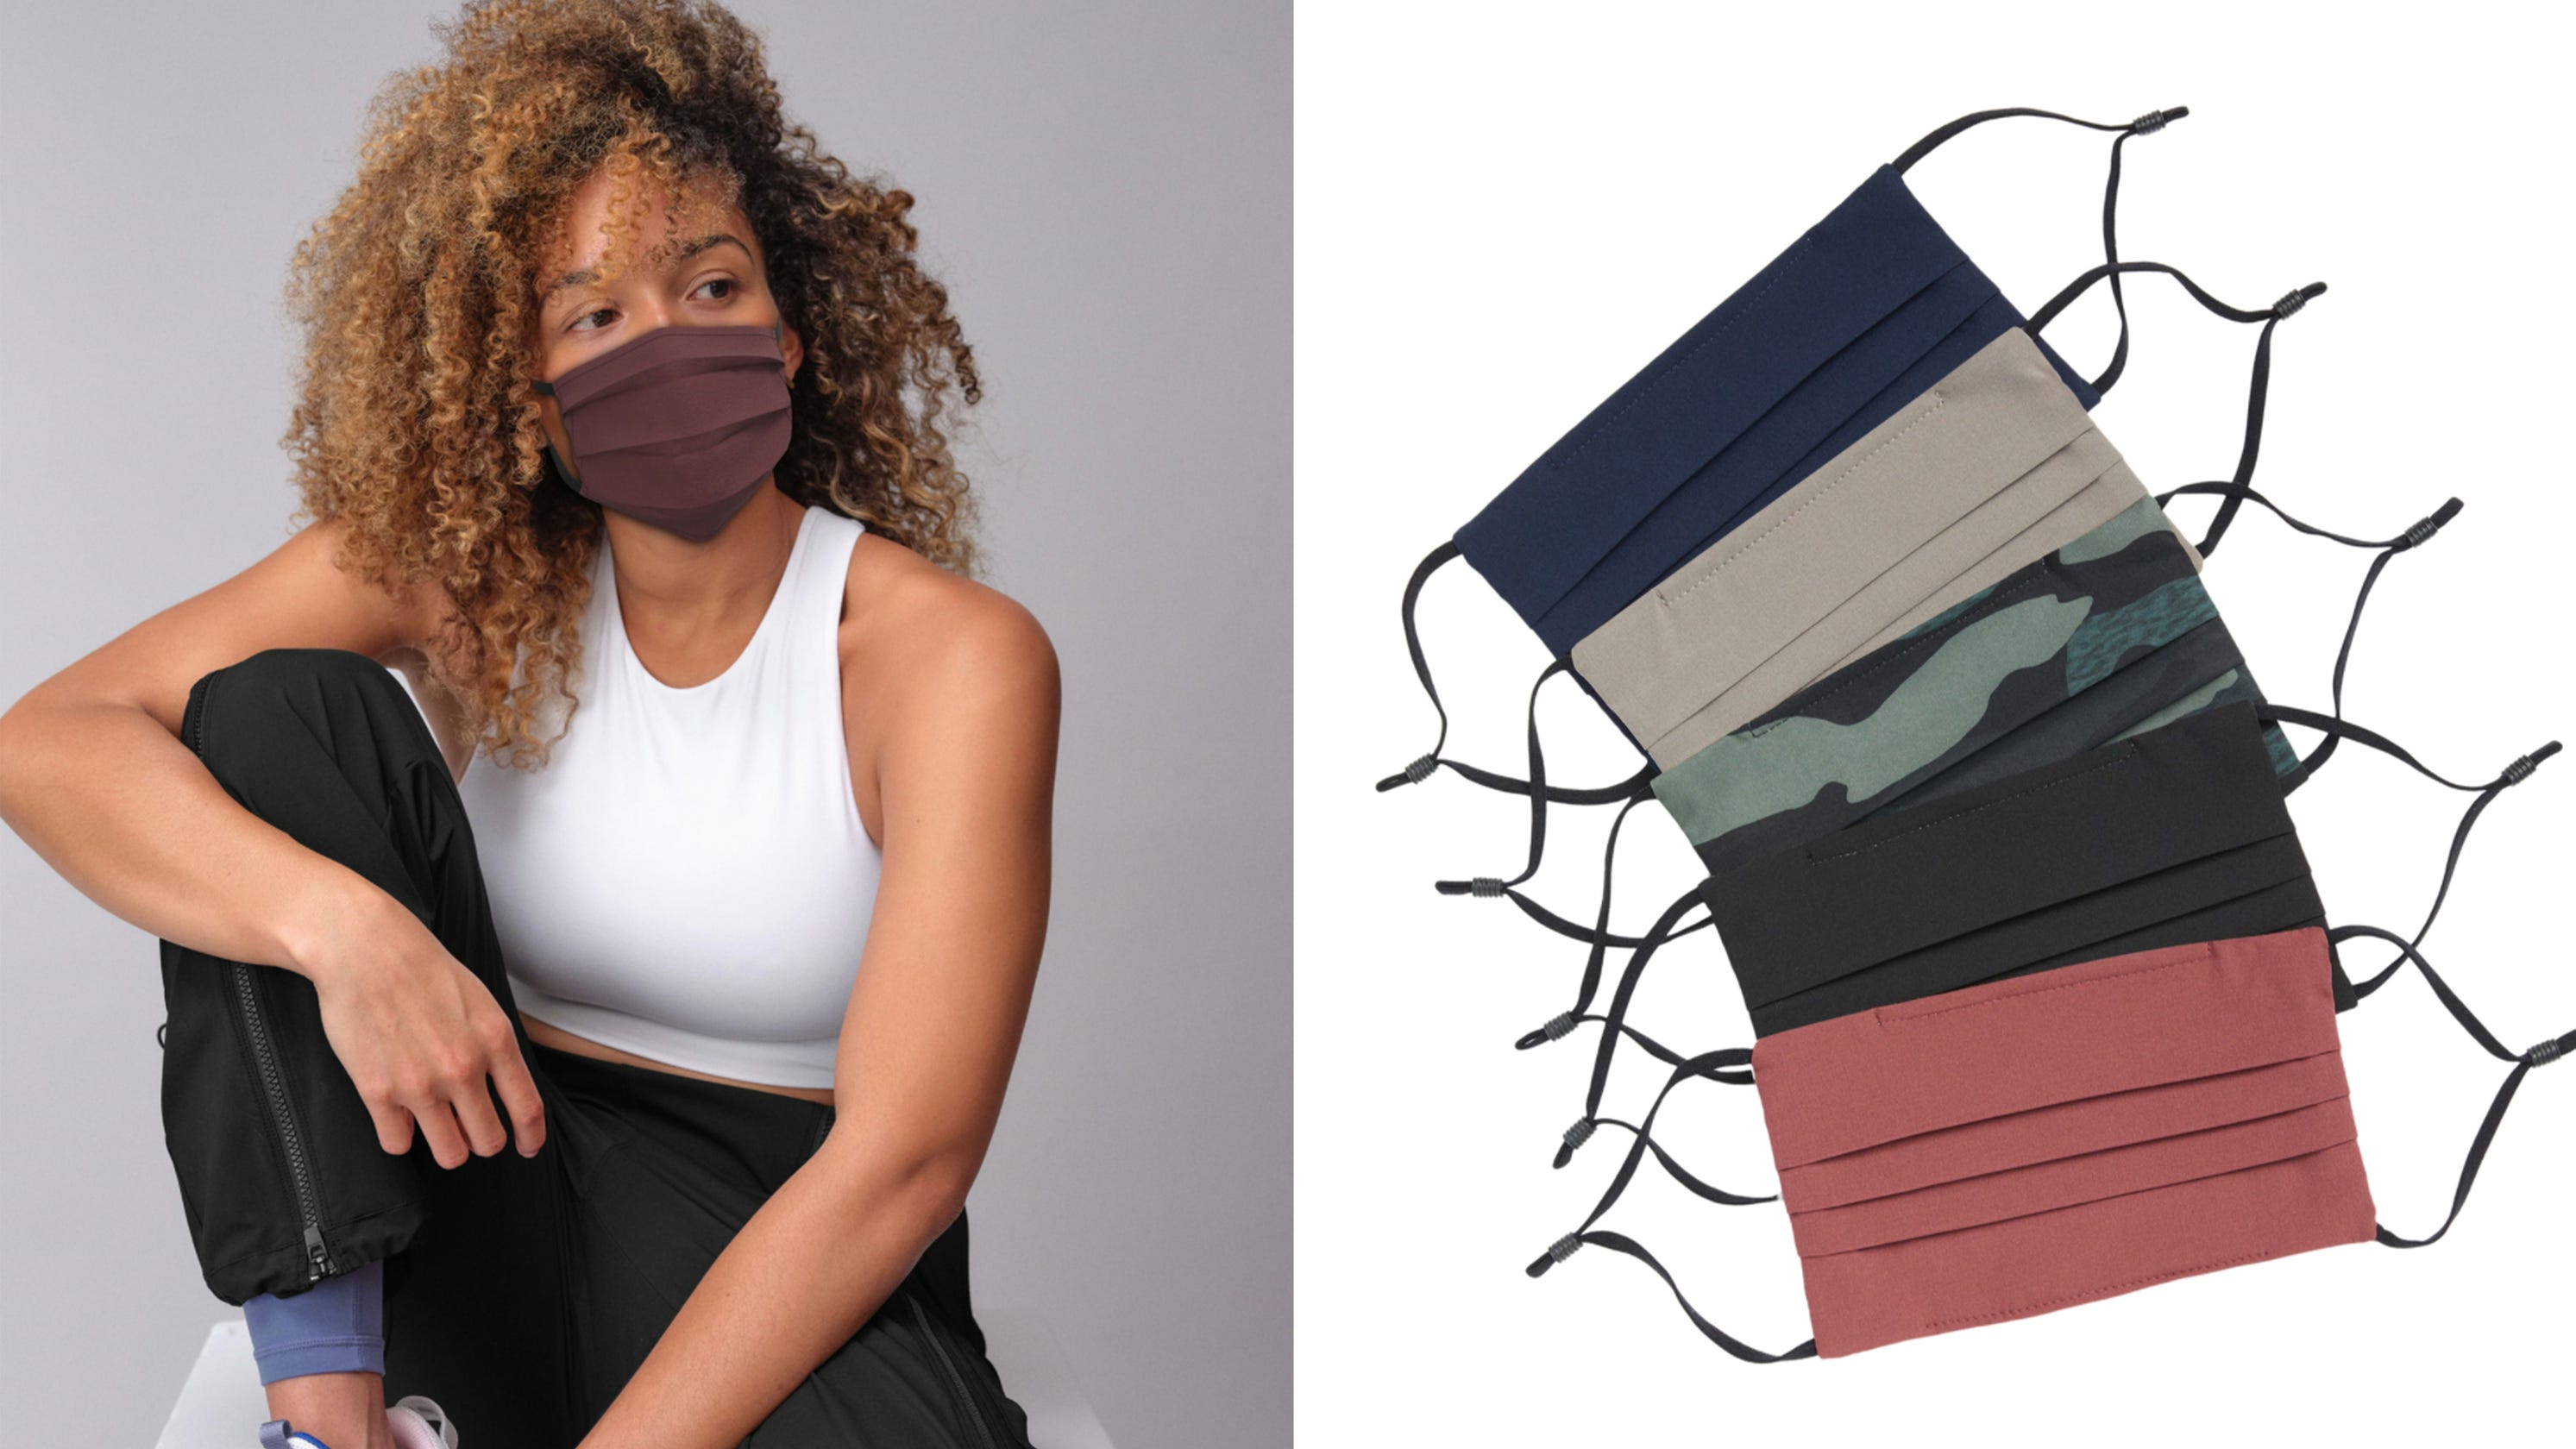 Athleta face mask deal: Get 20% off the best face covering we tested